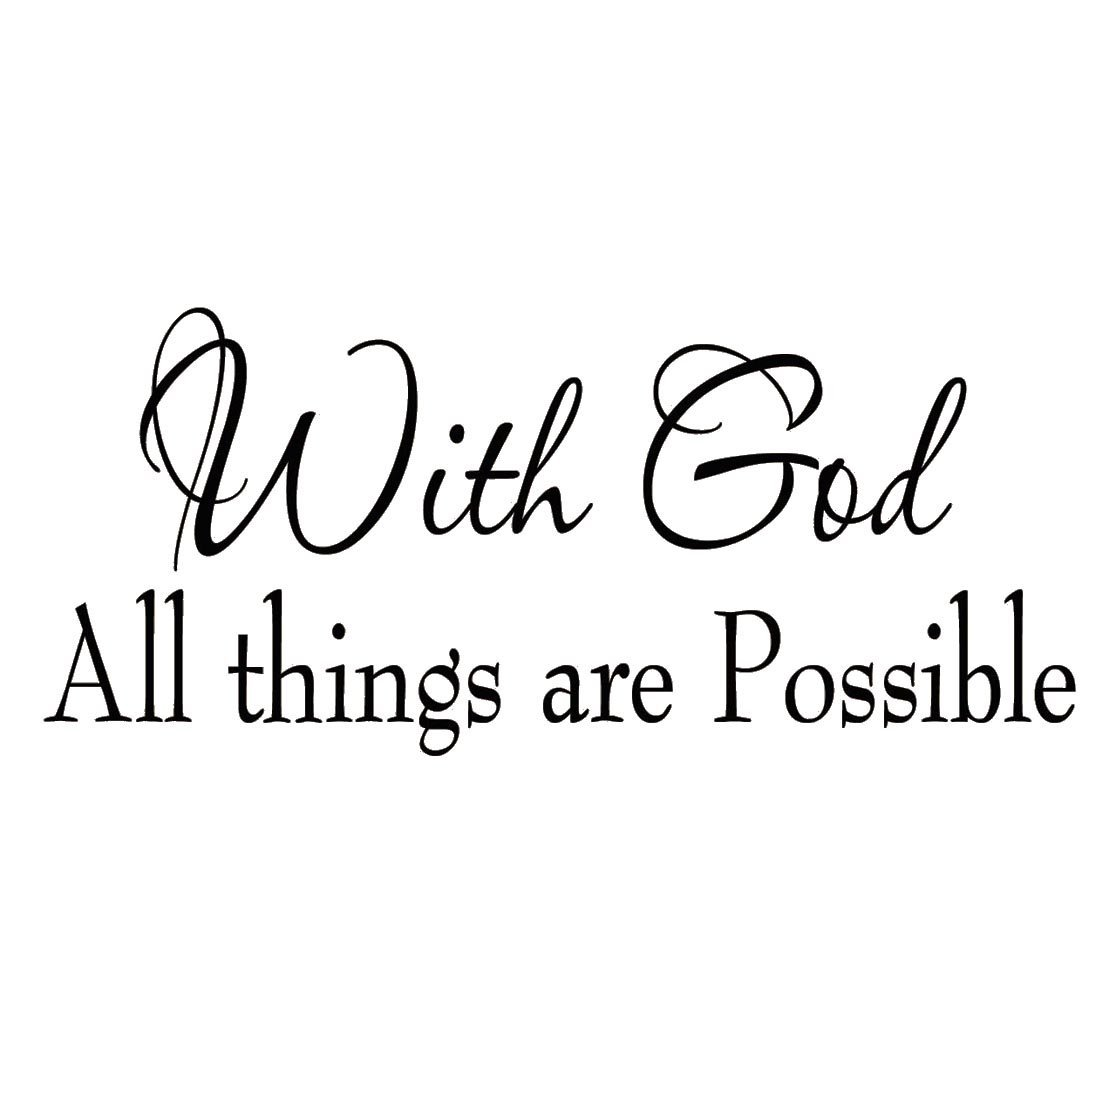 Aliexpress Buy Q001 With God All Things Are Possible